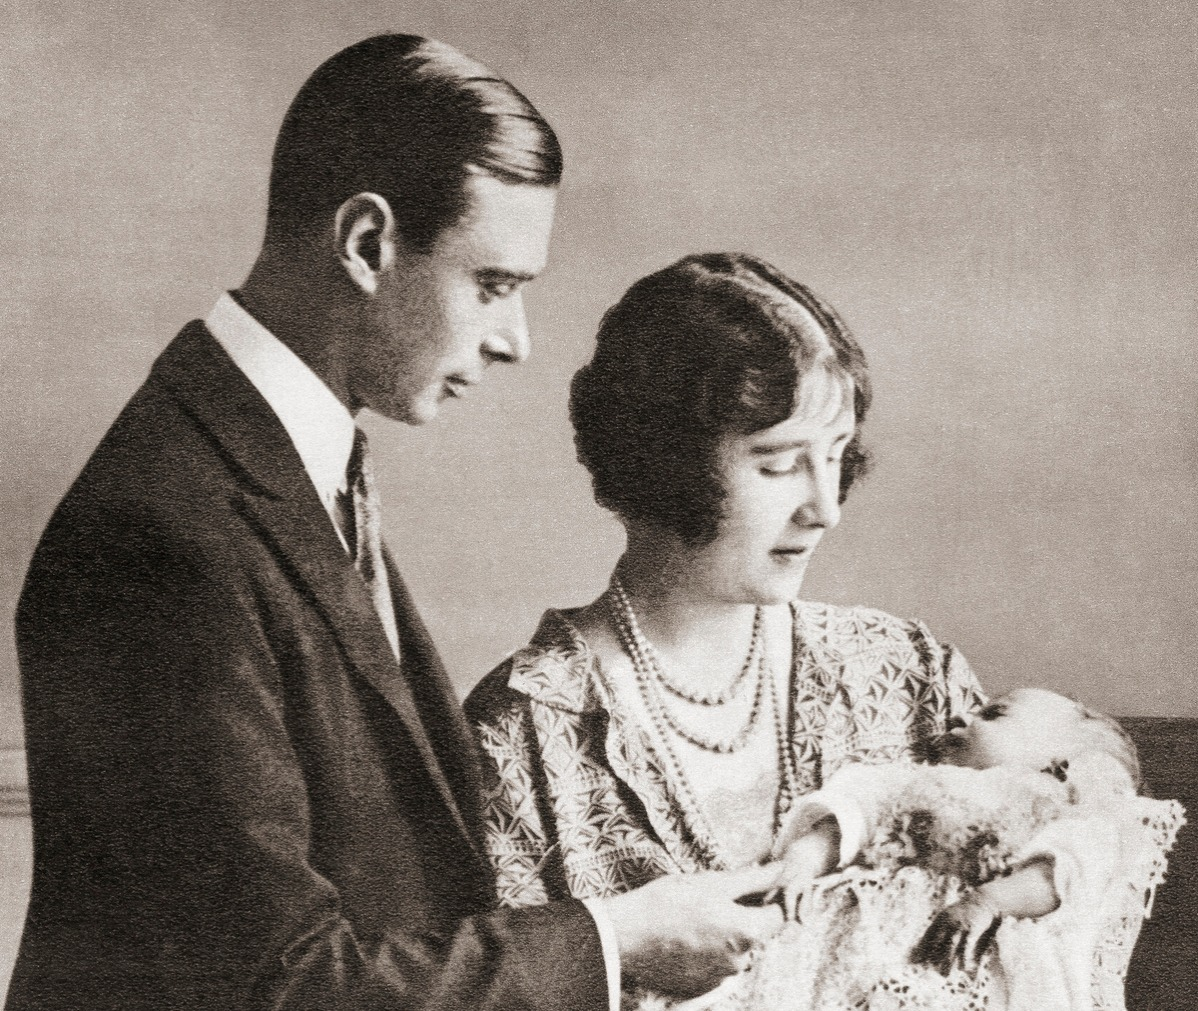 King George VI and Duchess of York christening Princess Elizabeth in 1926.